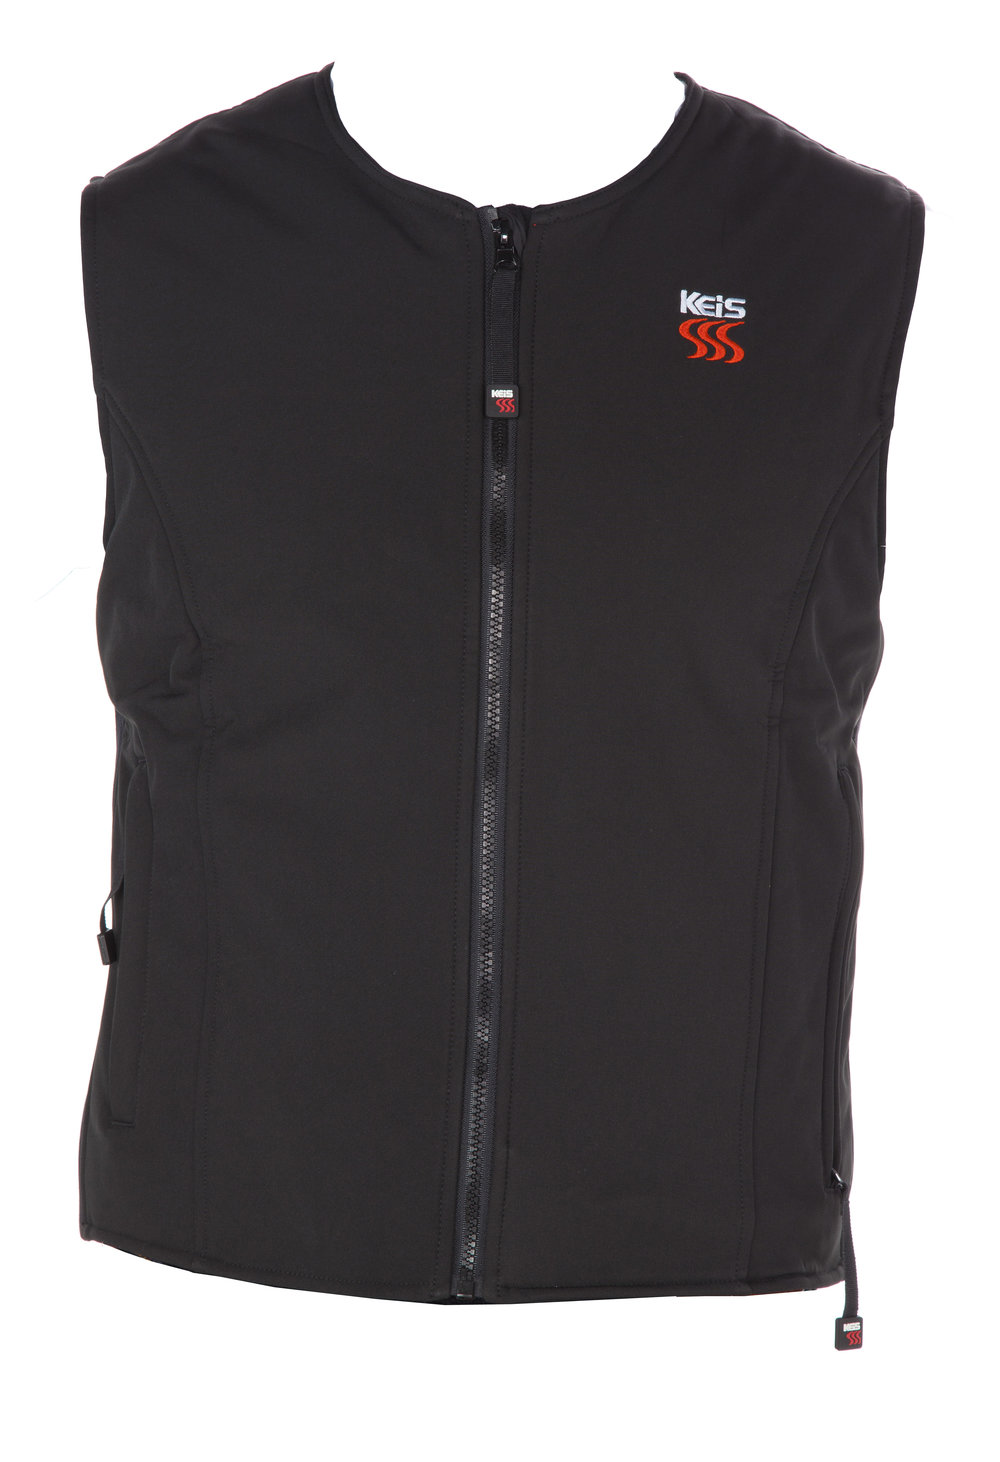 Keis X10 body warmer